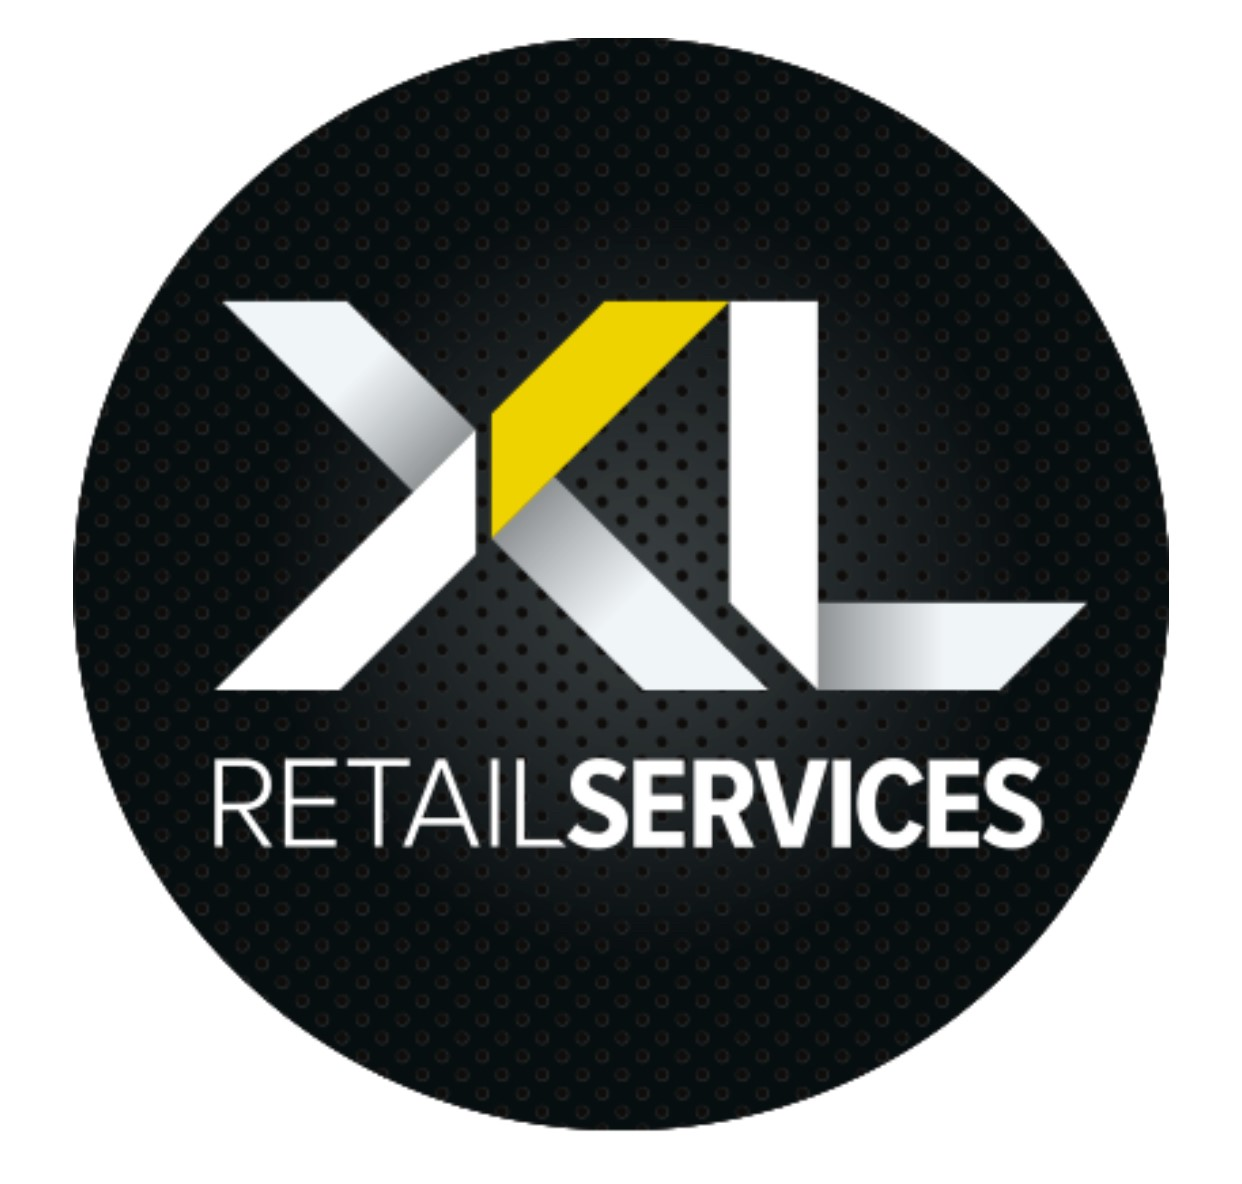 Kmart - XL Retail Services - Version 1.0